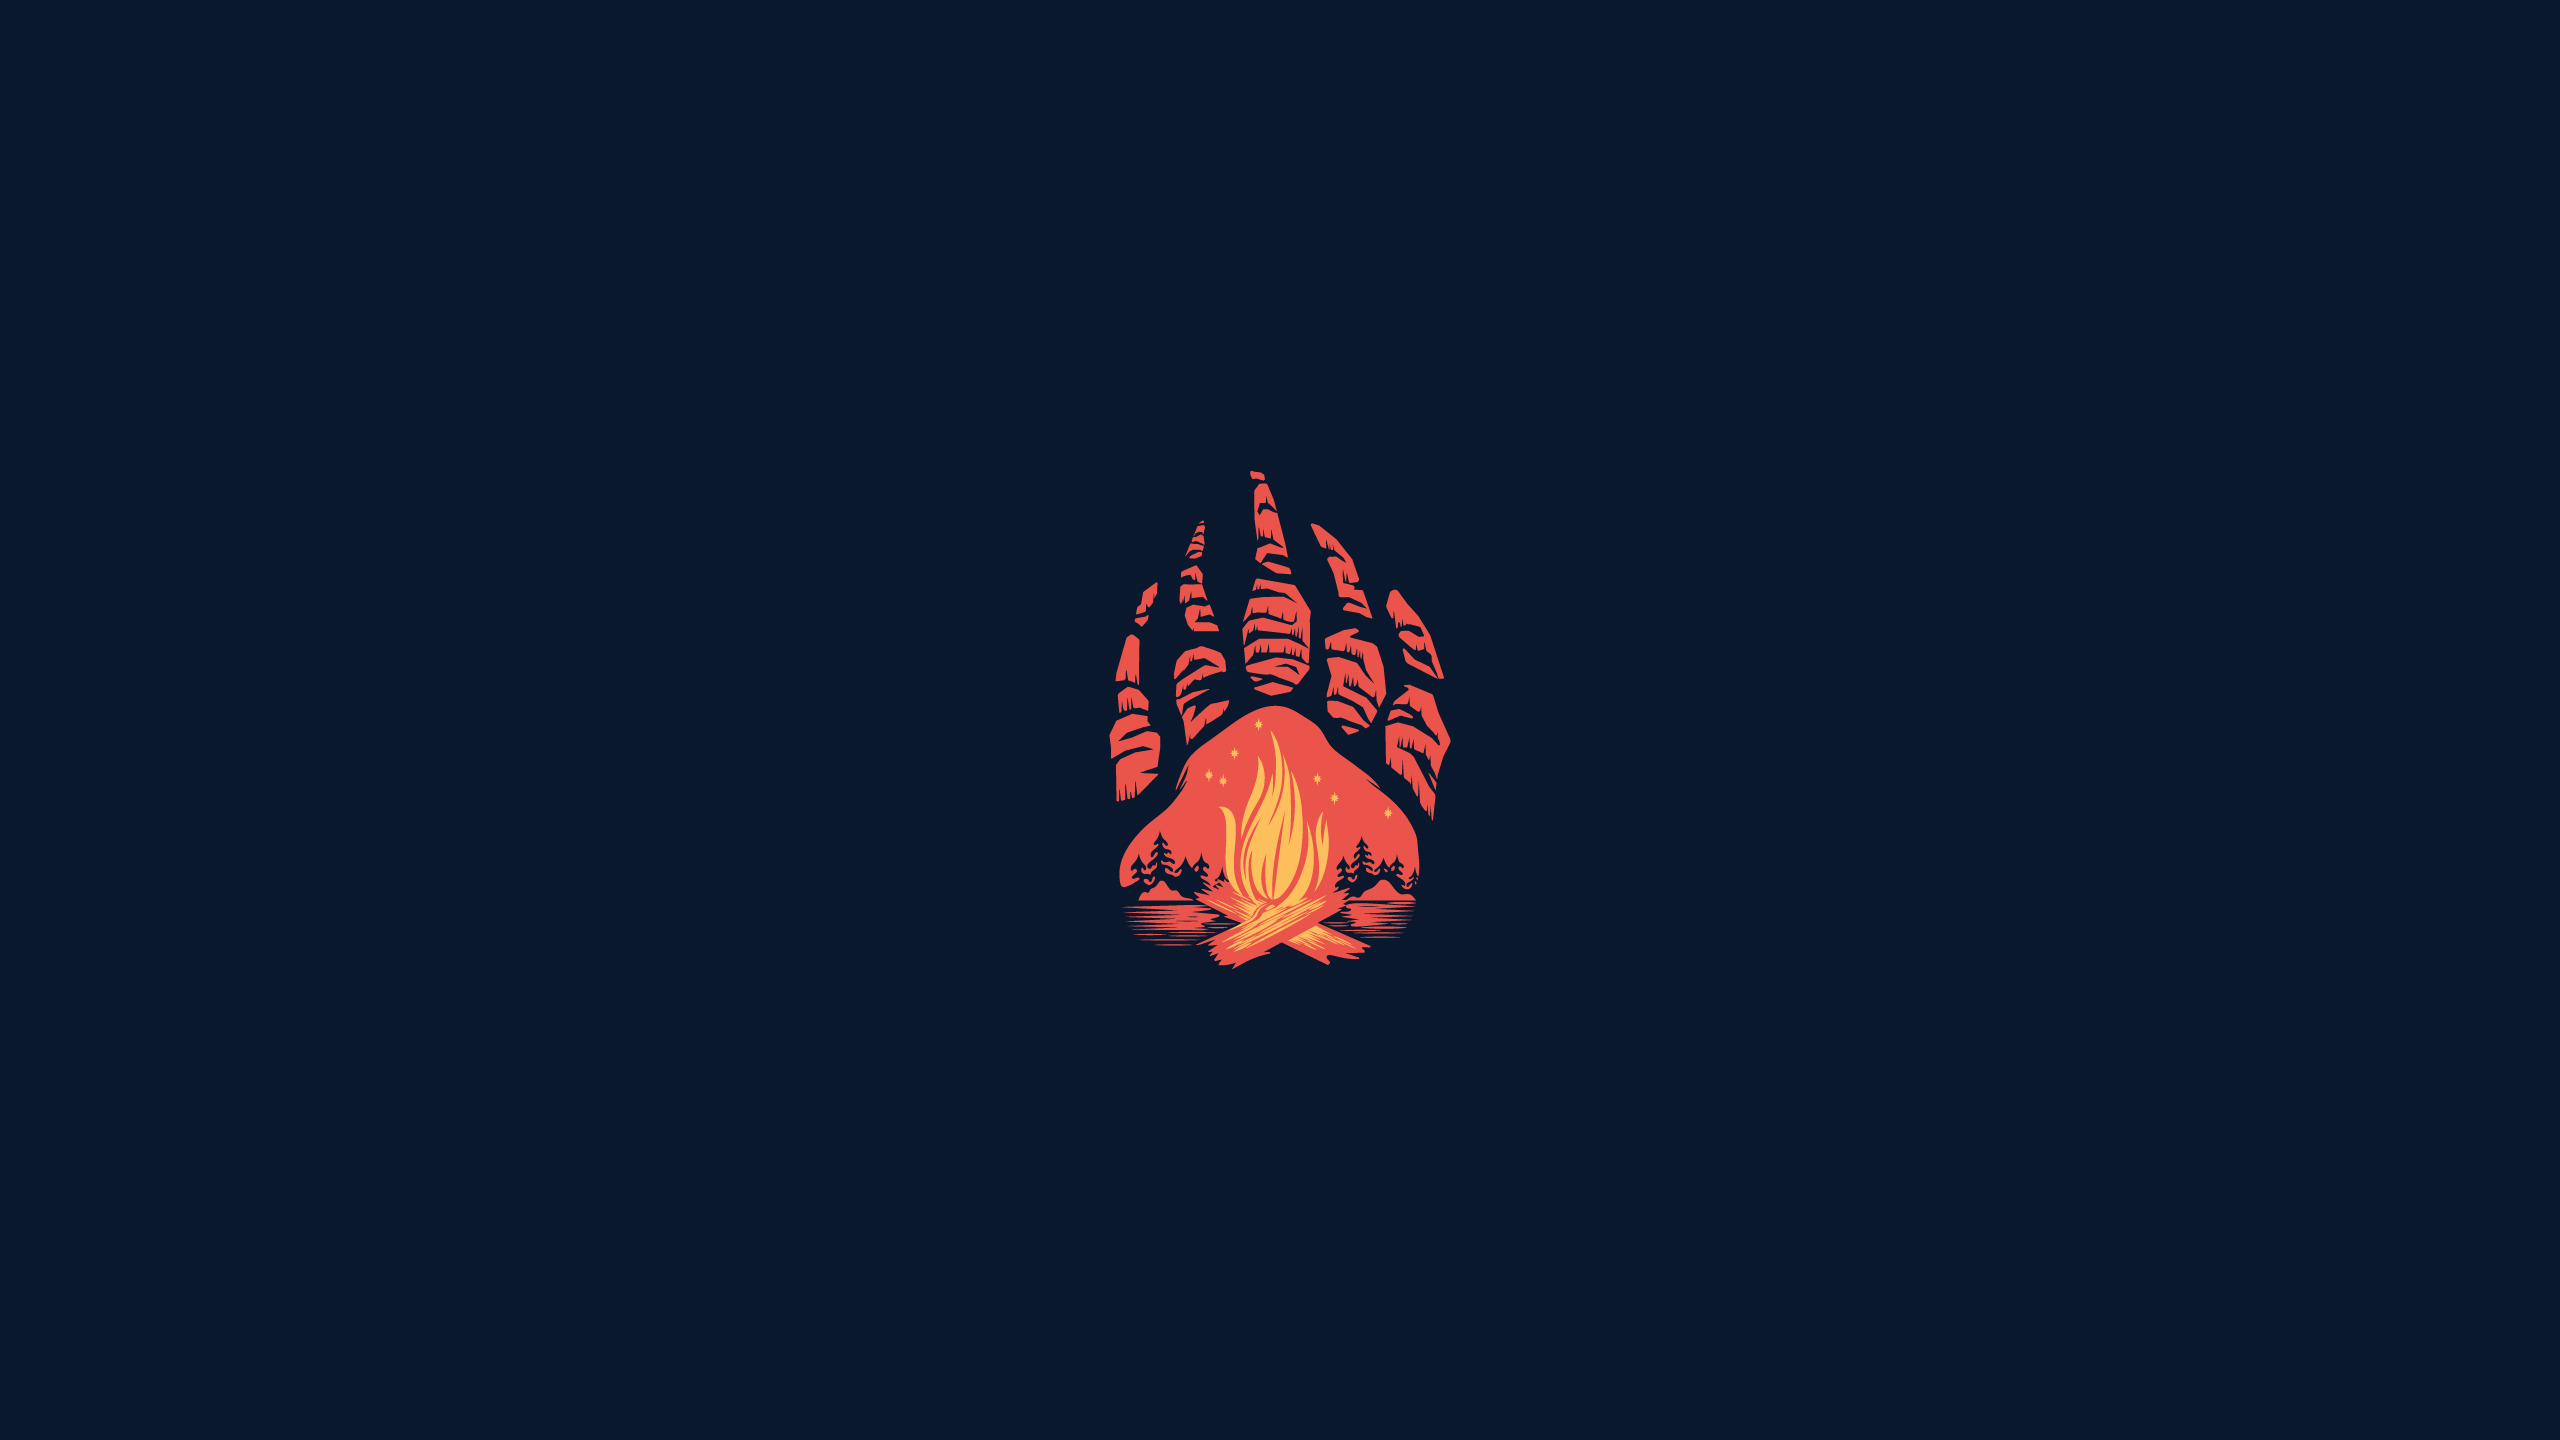 Download 2560x1440 Wallpaper Paws Campfire Minimal Abstract Dual Wide Widescreen 16 9 Widescreen 2560x1440 Hd Image Background 2853